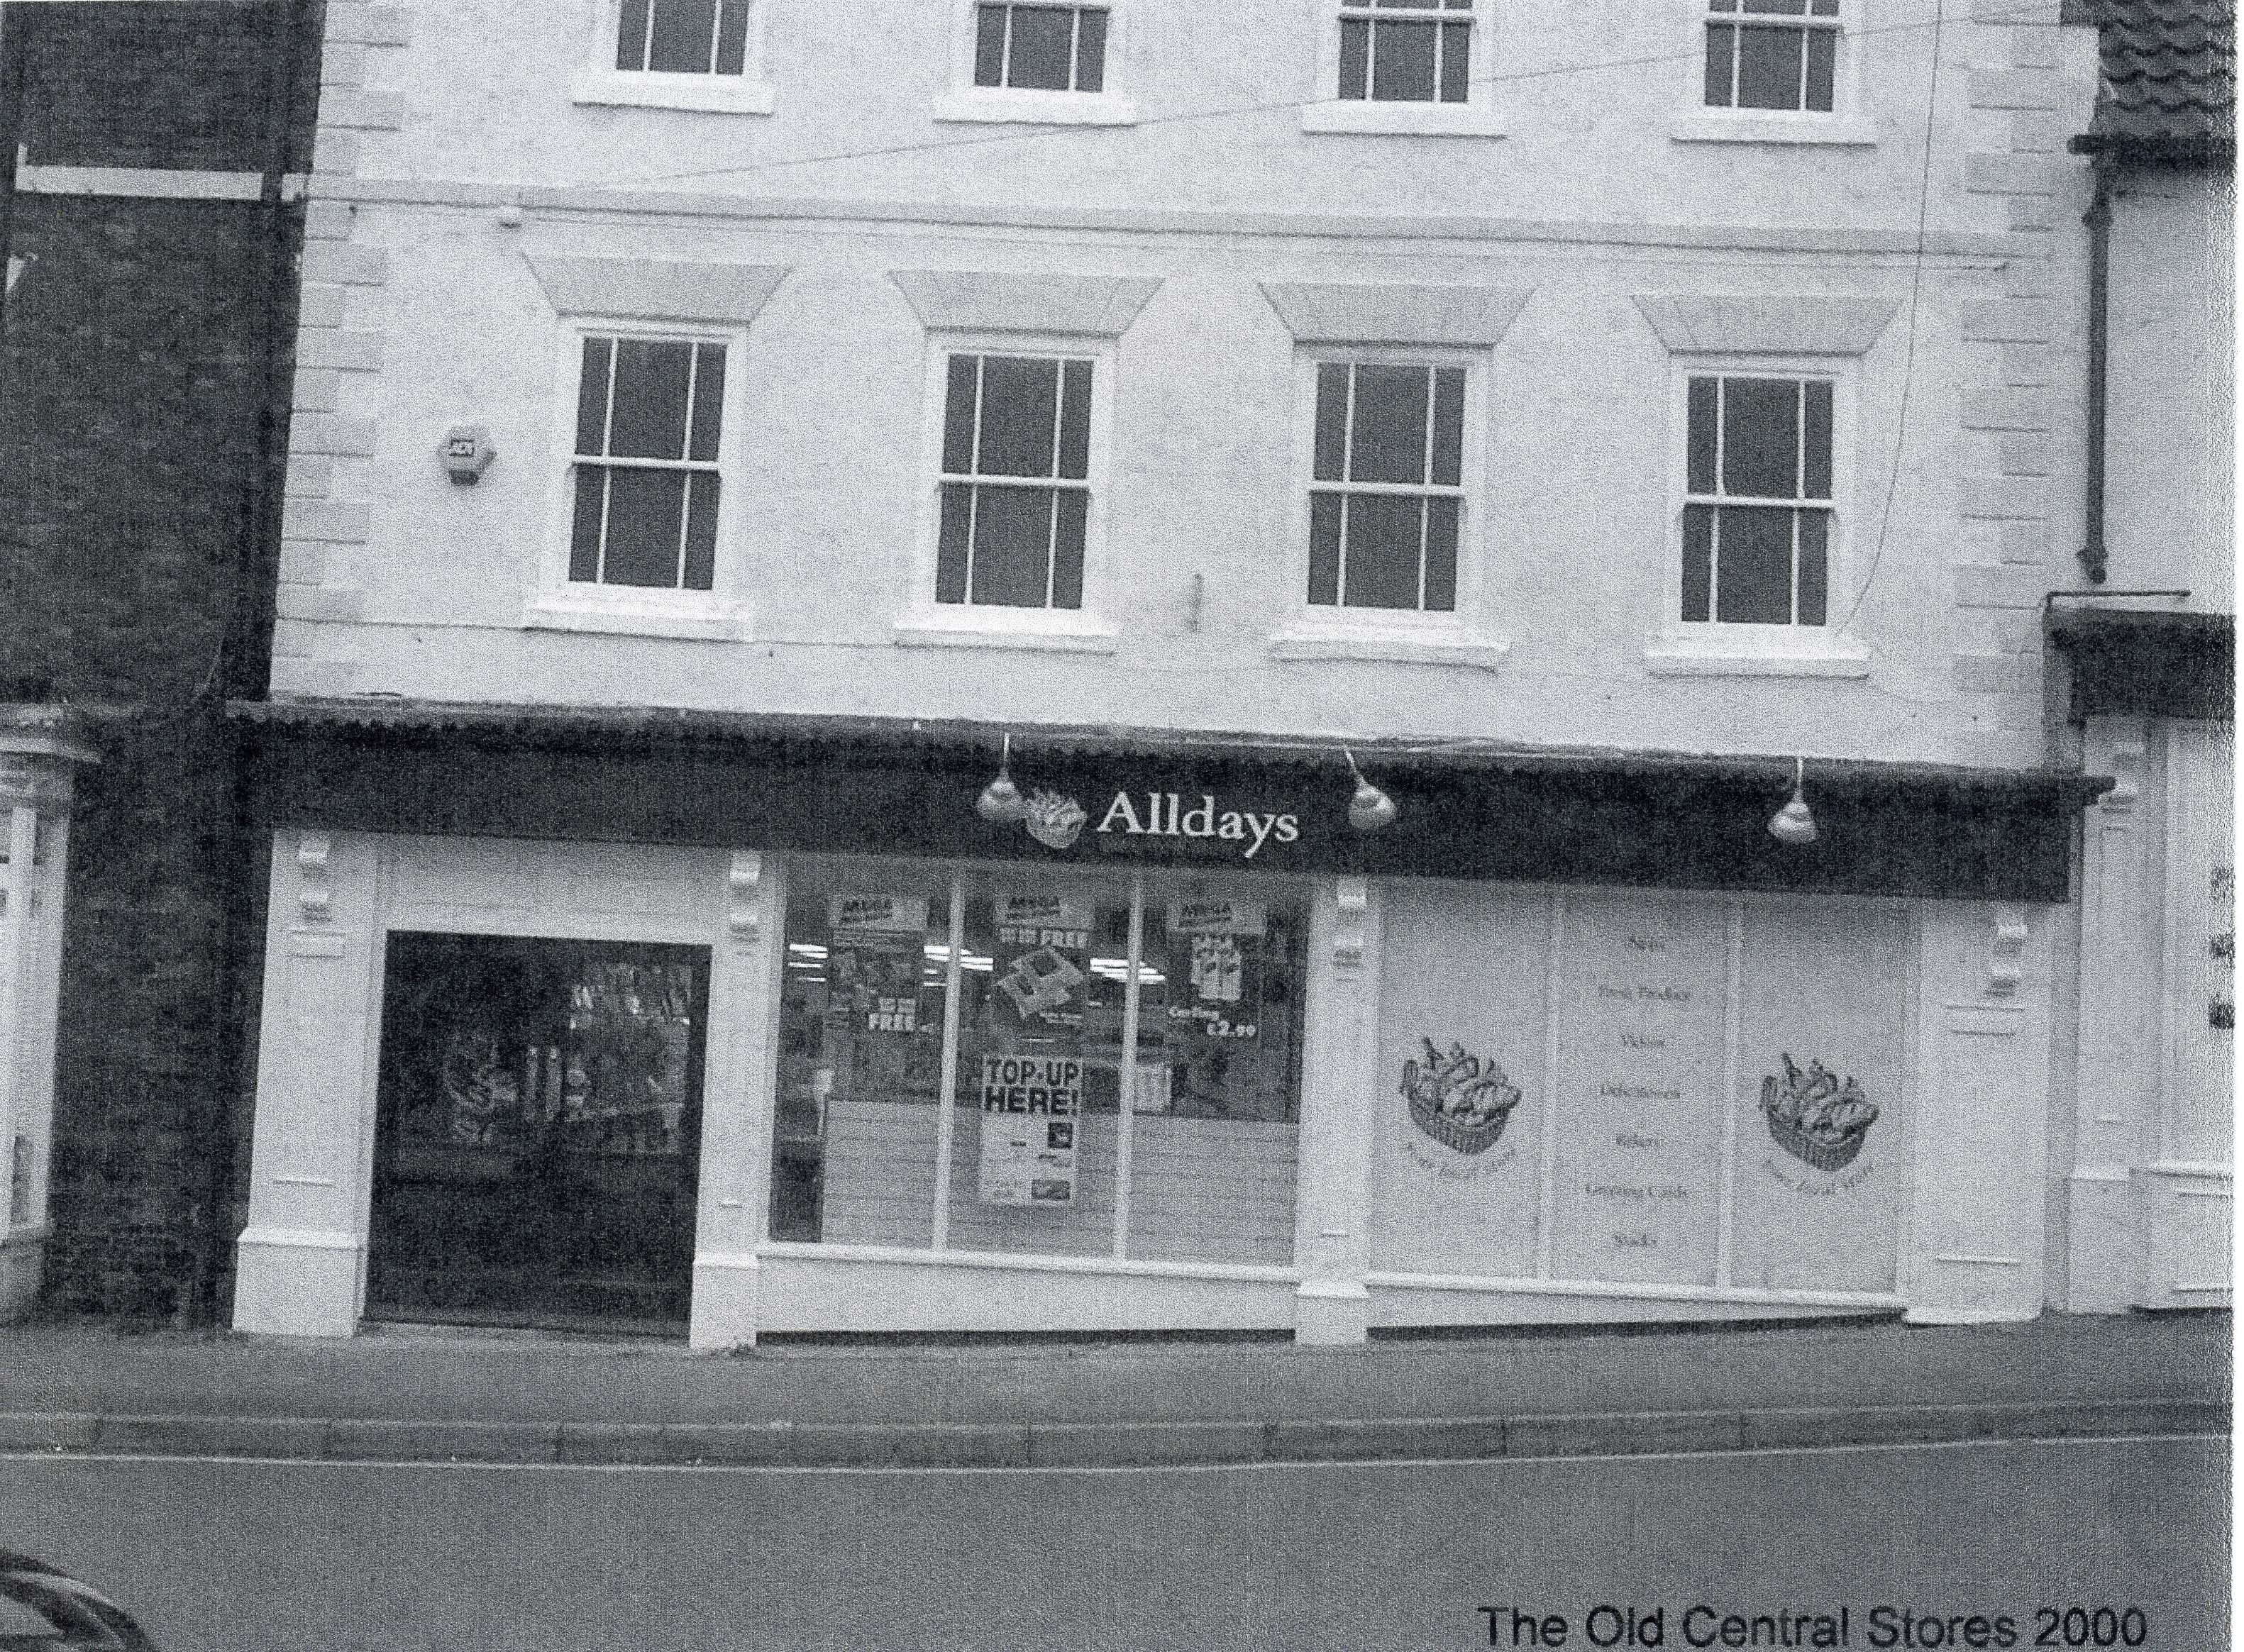 alldays_the old central stores155.jpg